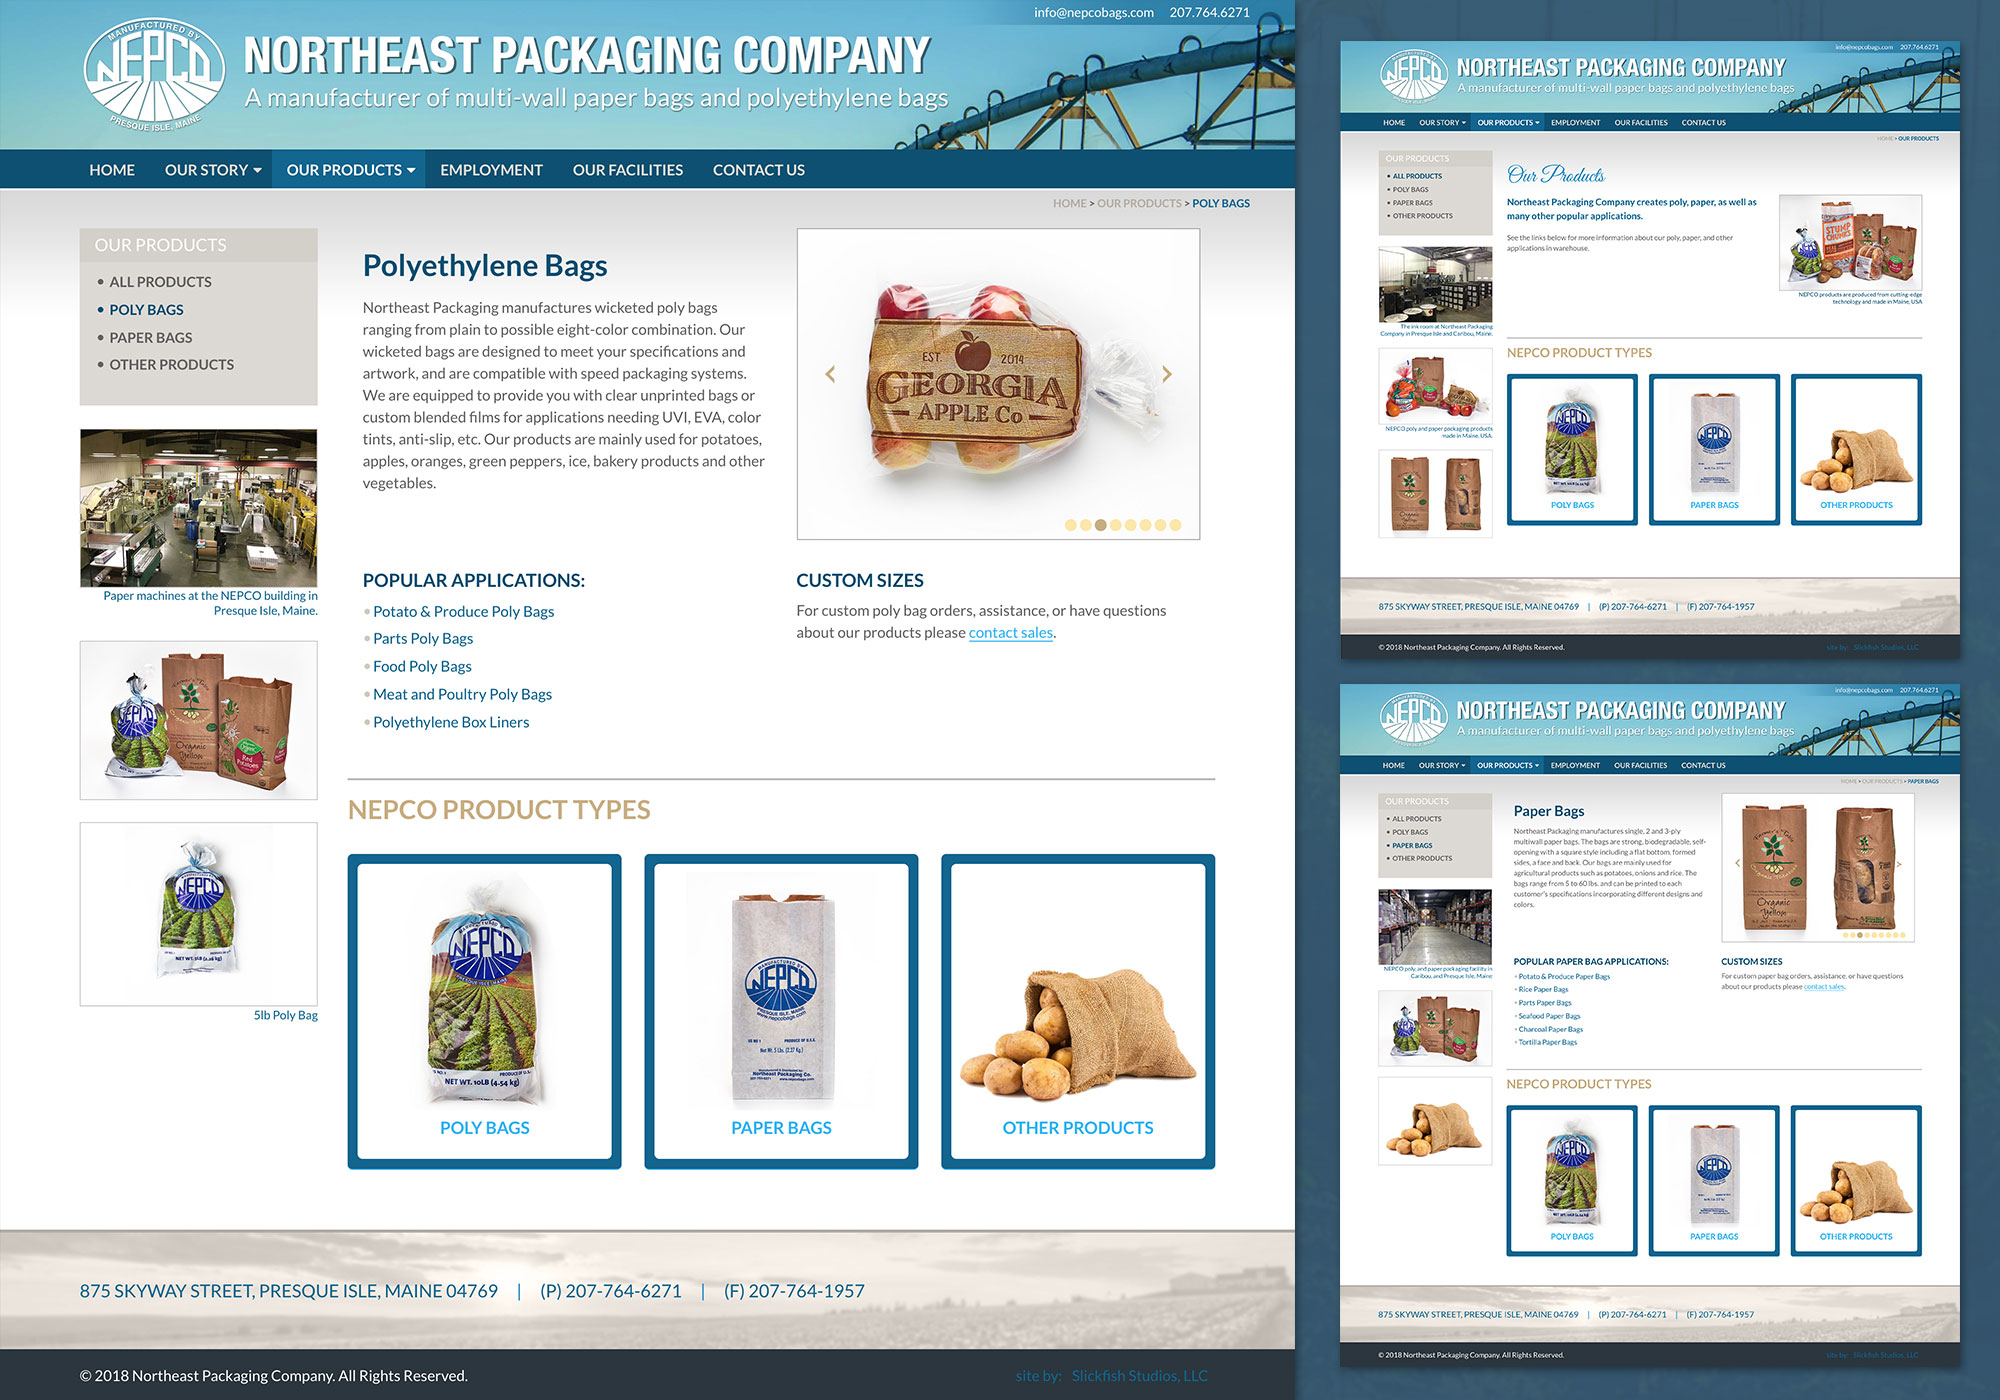 A composite screenshot showing NEPCO's paper, poly and products landing pages for their bags. Designed and developed by Maine website design company, SlickFish Studios